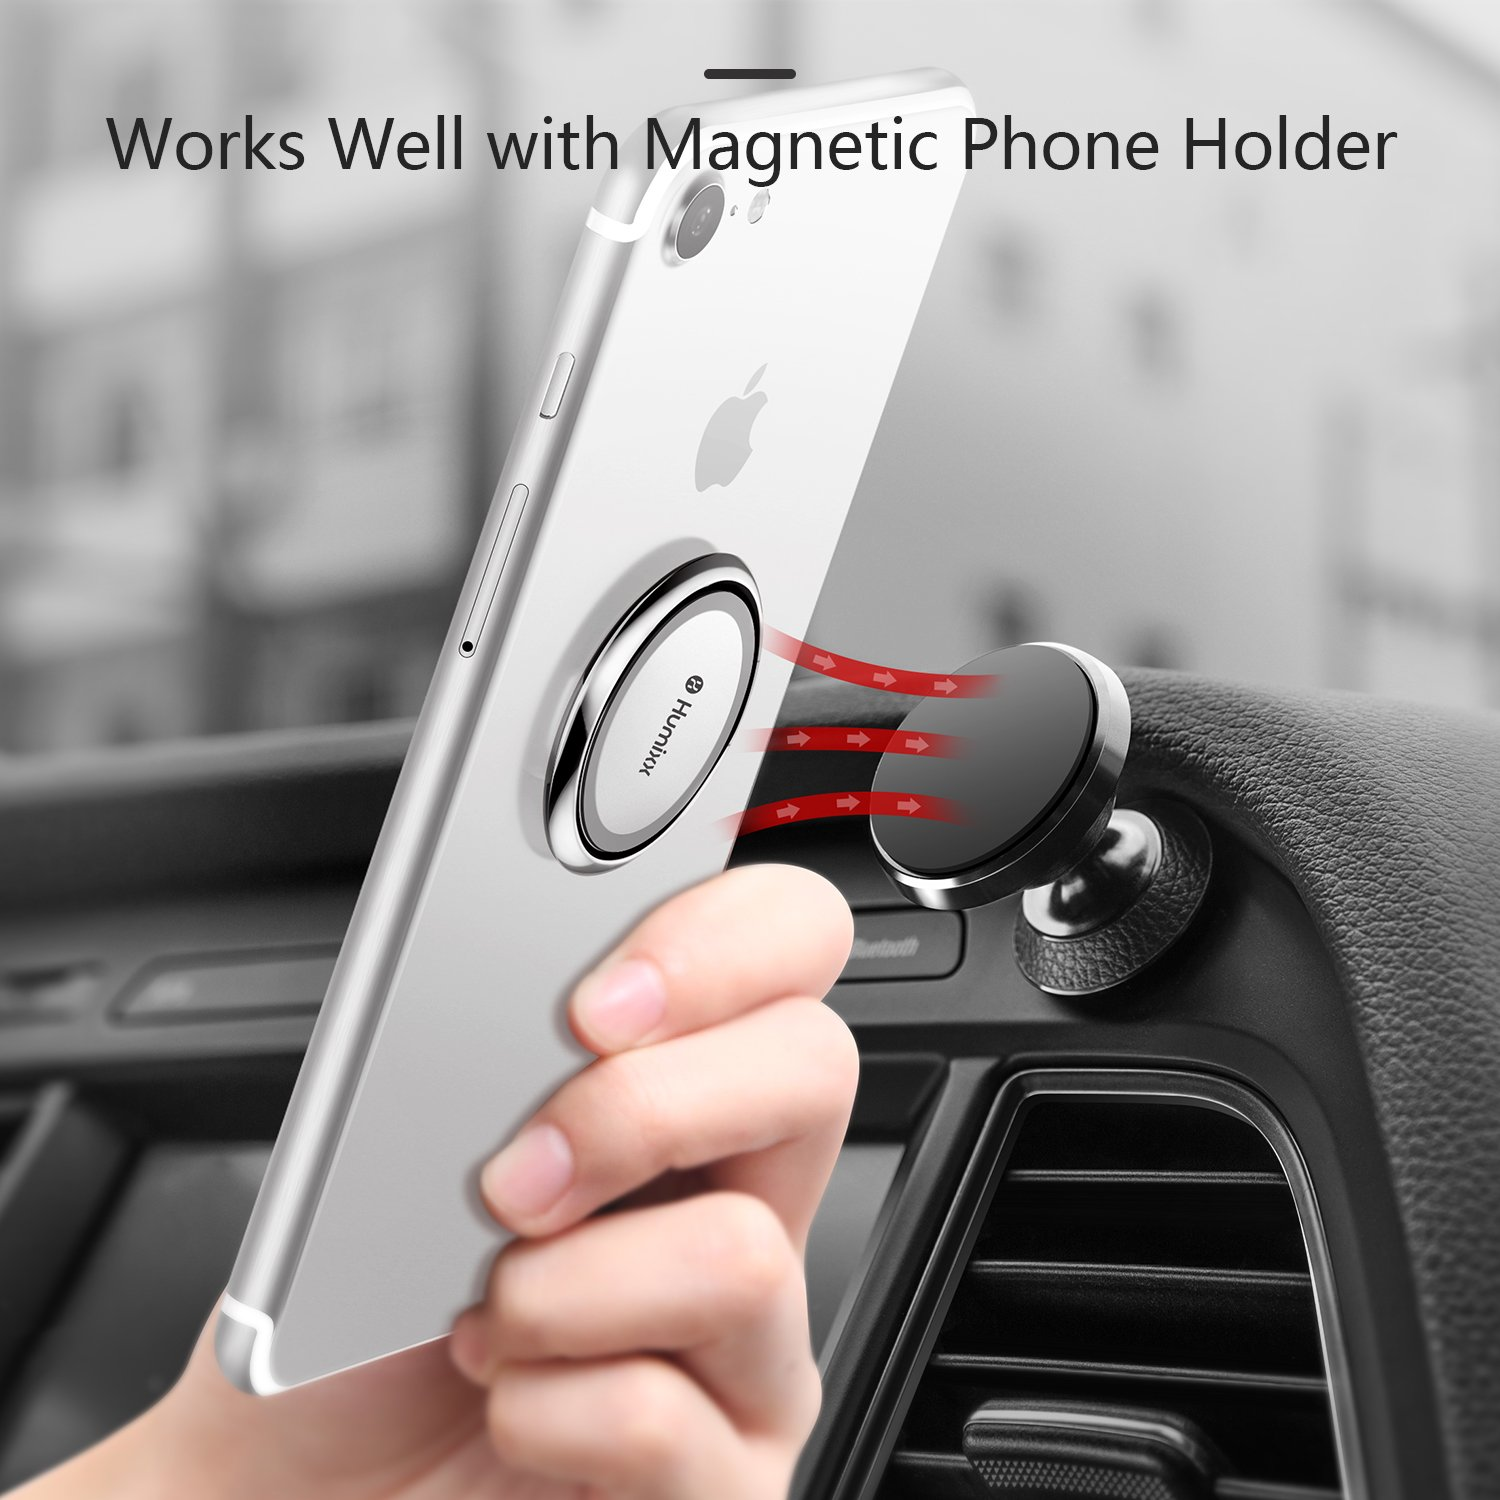 Huawei P30 etc. Samsung S10//S10 Plus Humixx Phone Ring Holder Universal Phone Ring Stand Fit Well with Magnetic Phone Mount Holder 360/° Rotation Compatible with iPhone 8 Plus//X//XR//XS Max